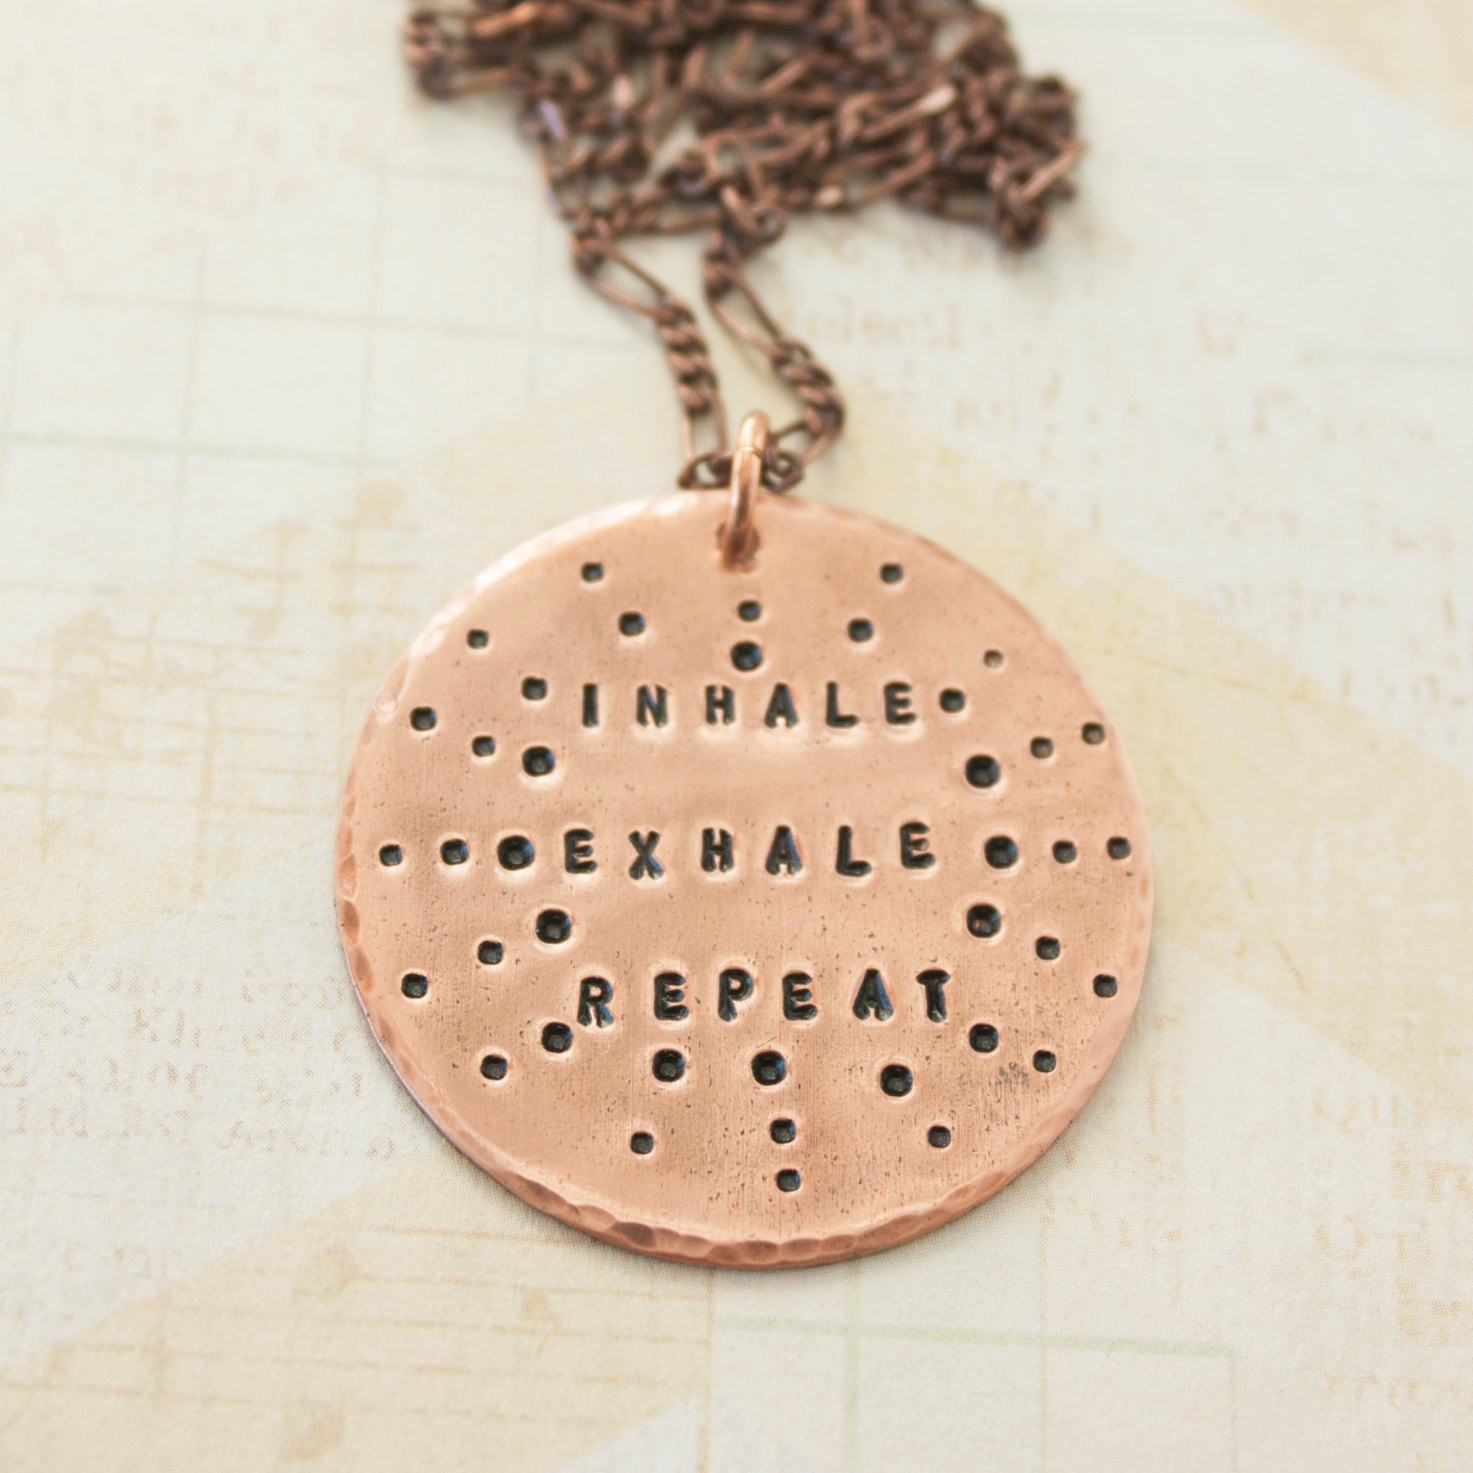 Inhale exhale repeat Copper necklace